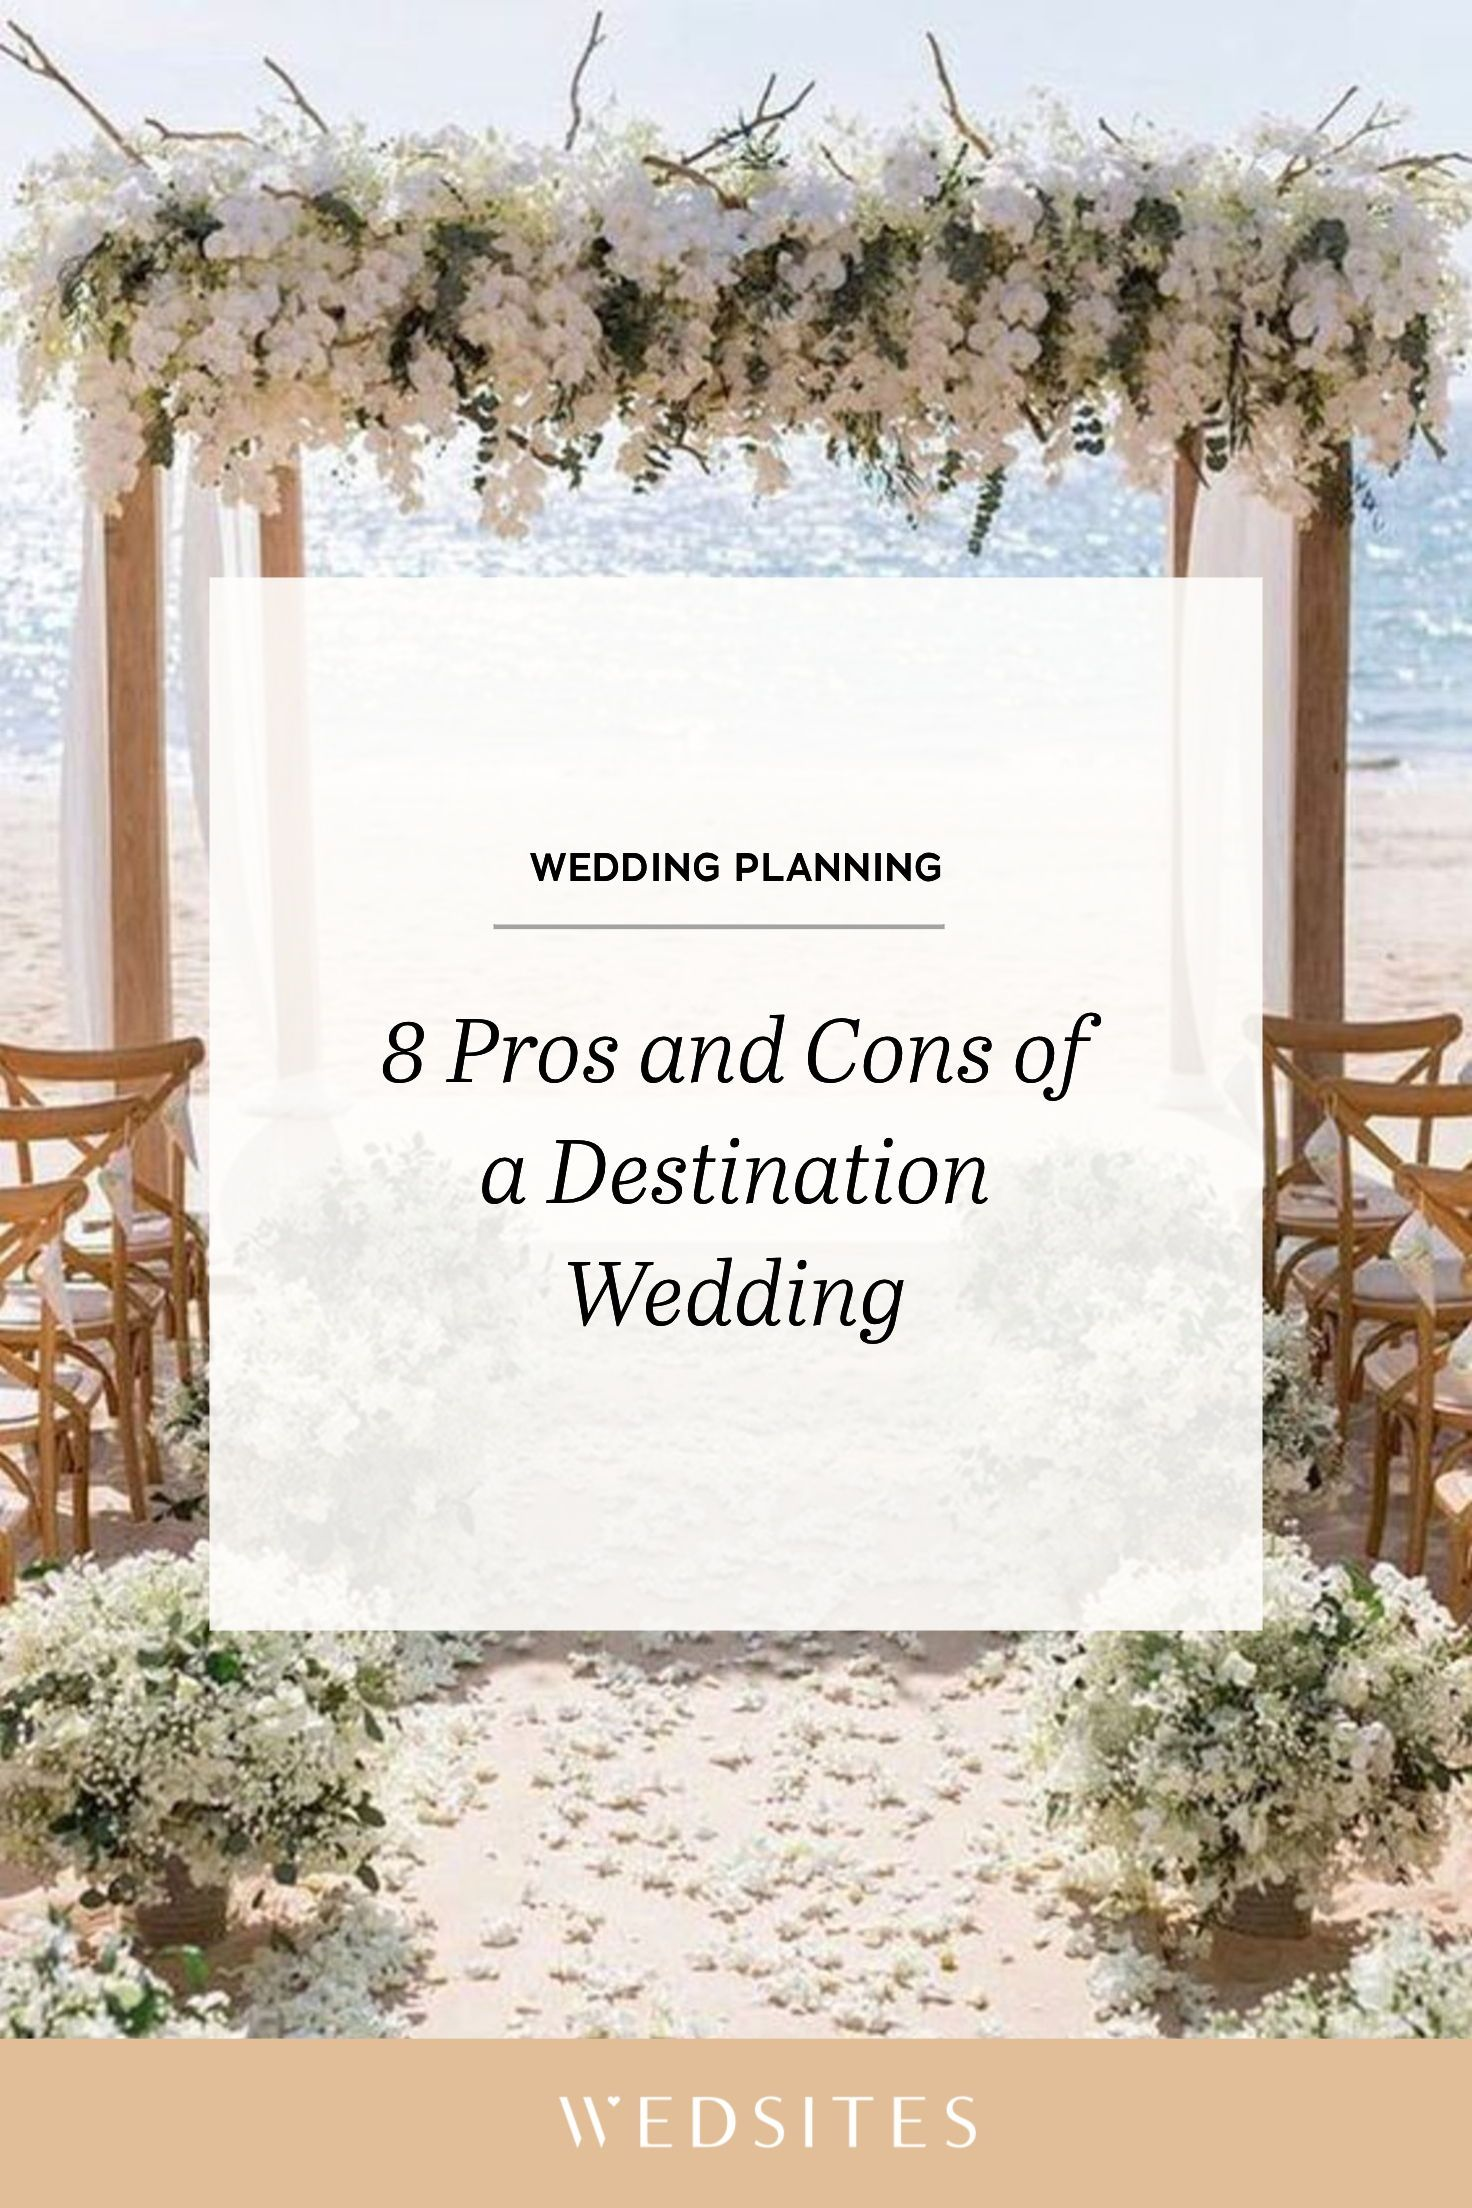 8 Pros and Cons of Destination Weddings